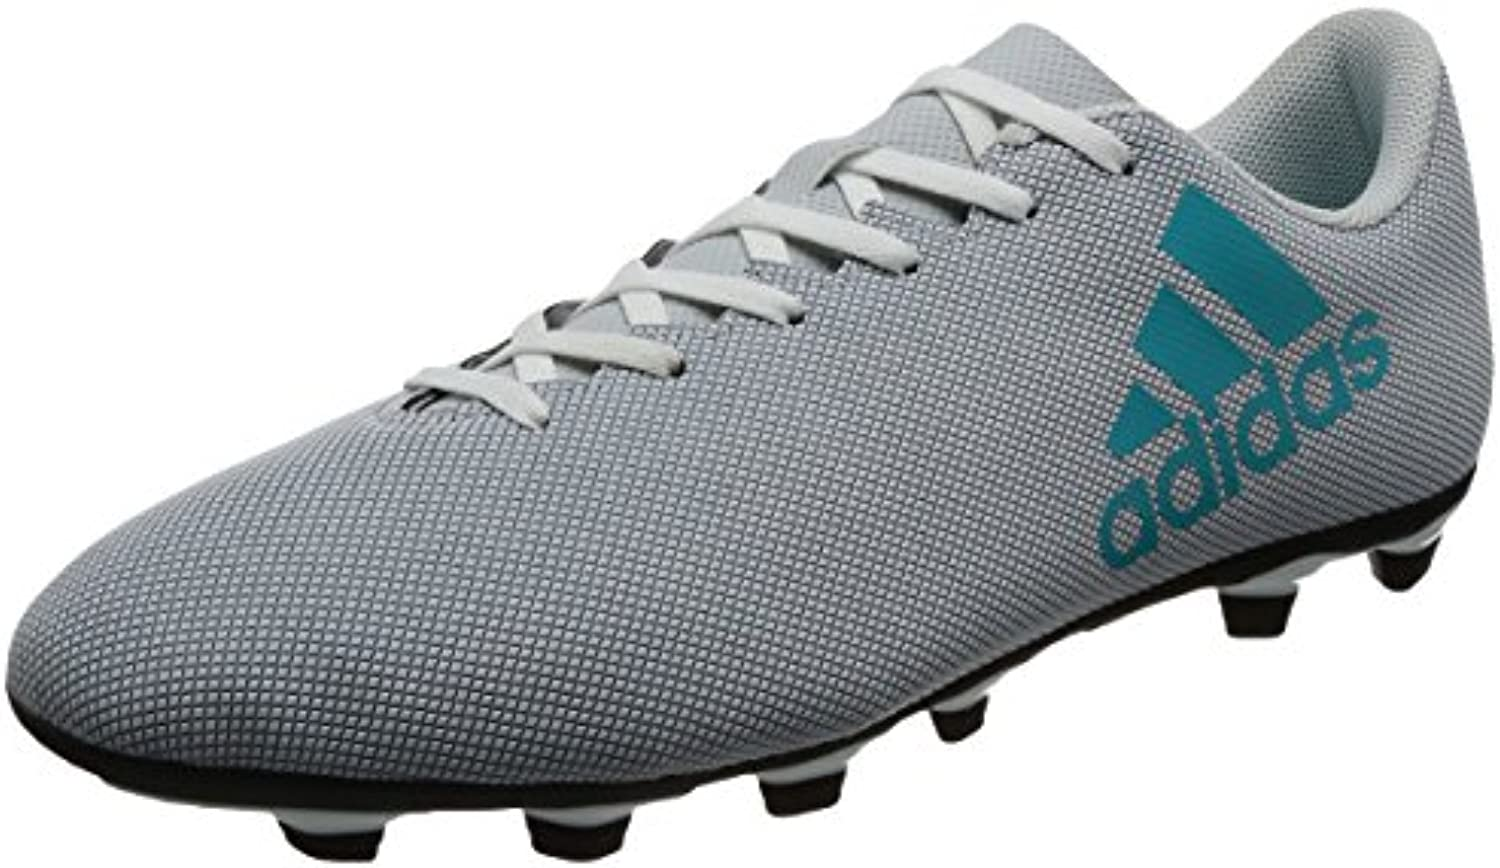 Adidas X 74 FxG, Zapatillas de Fútbol para Hombre, Multicolor (FTWR White/Energy Blue/Clear Grey), 44 EU